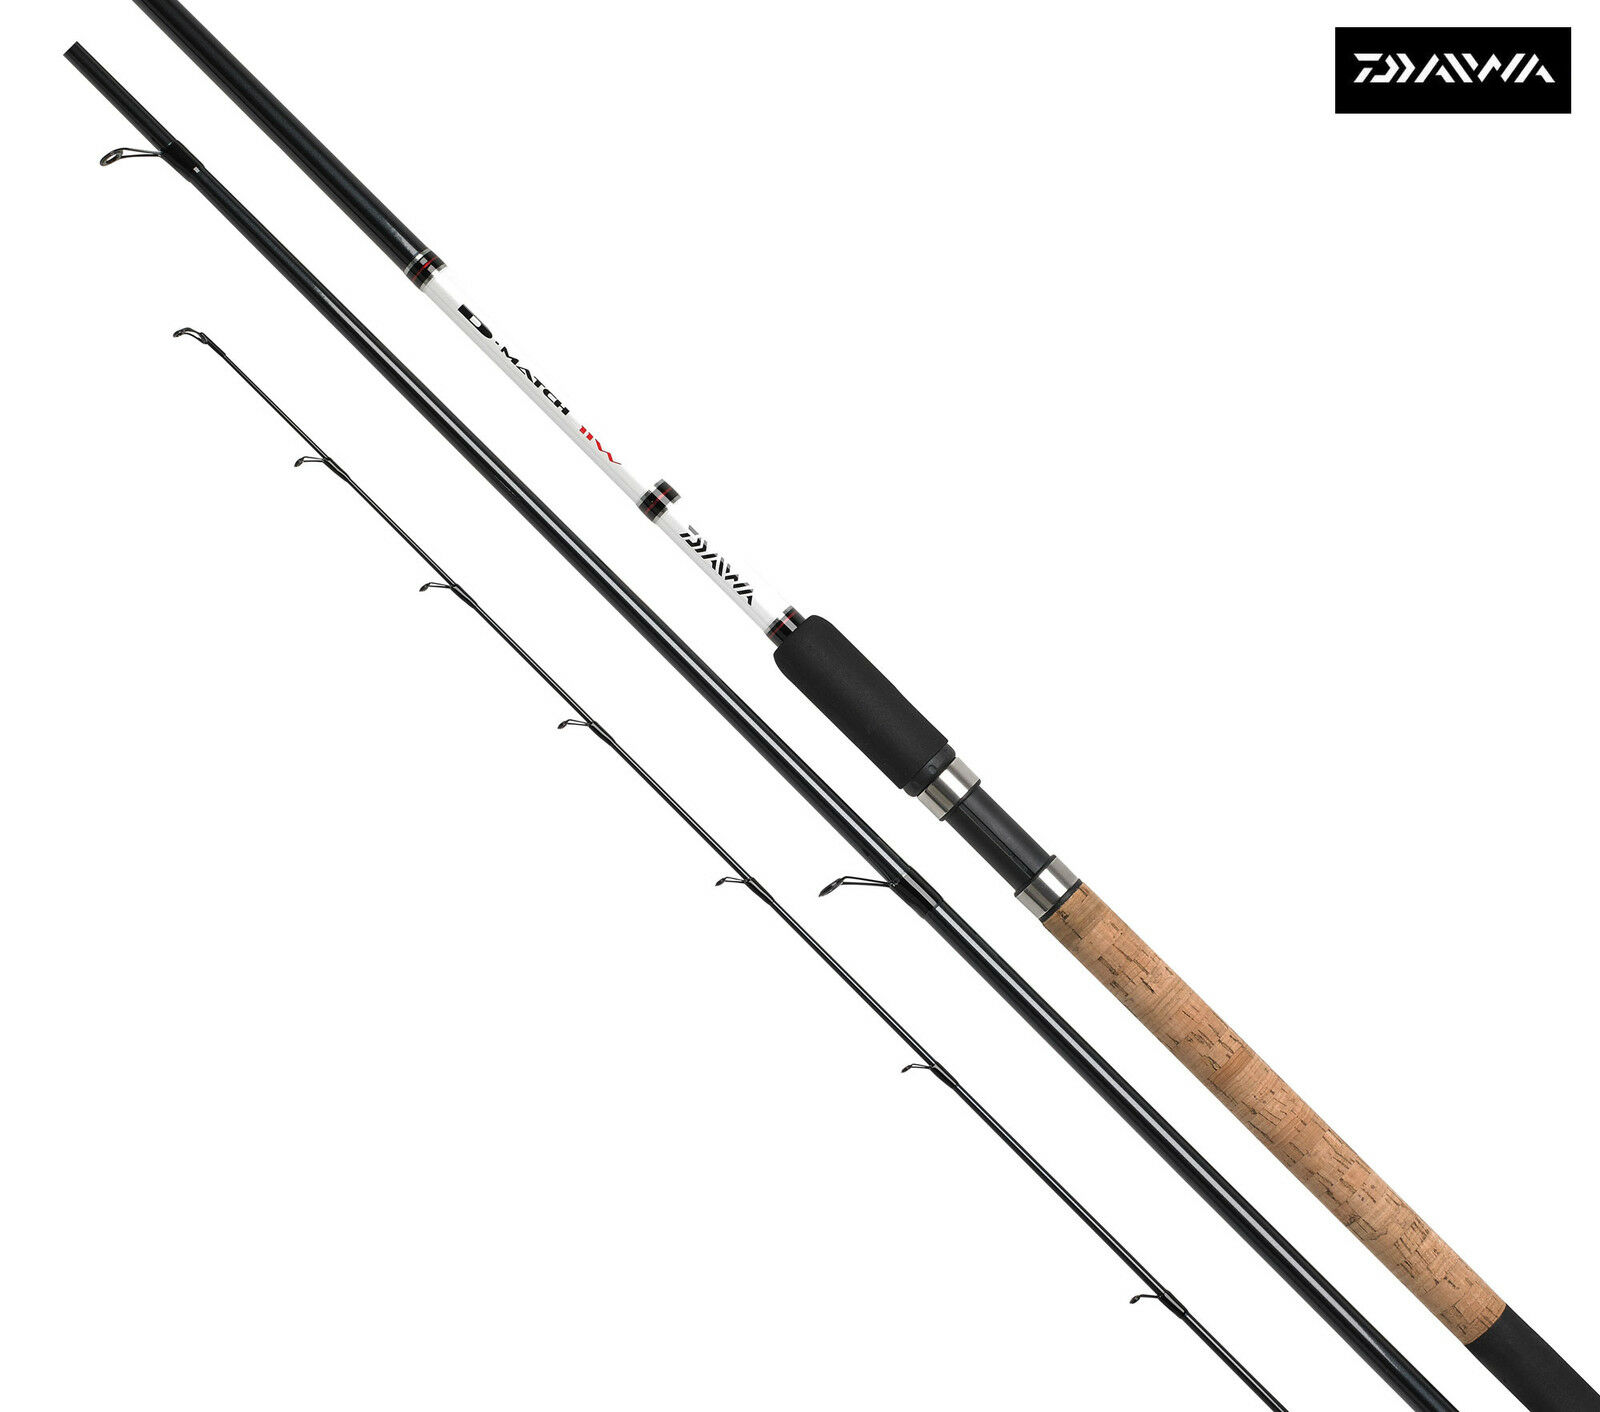 Specialerbjudande Daiwa D Match 11ft Waggler Fishing Rod - DM11W-AU